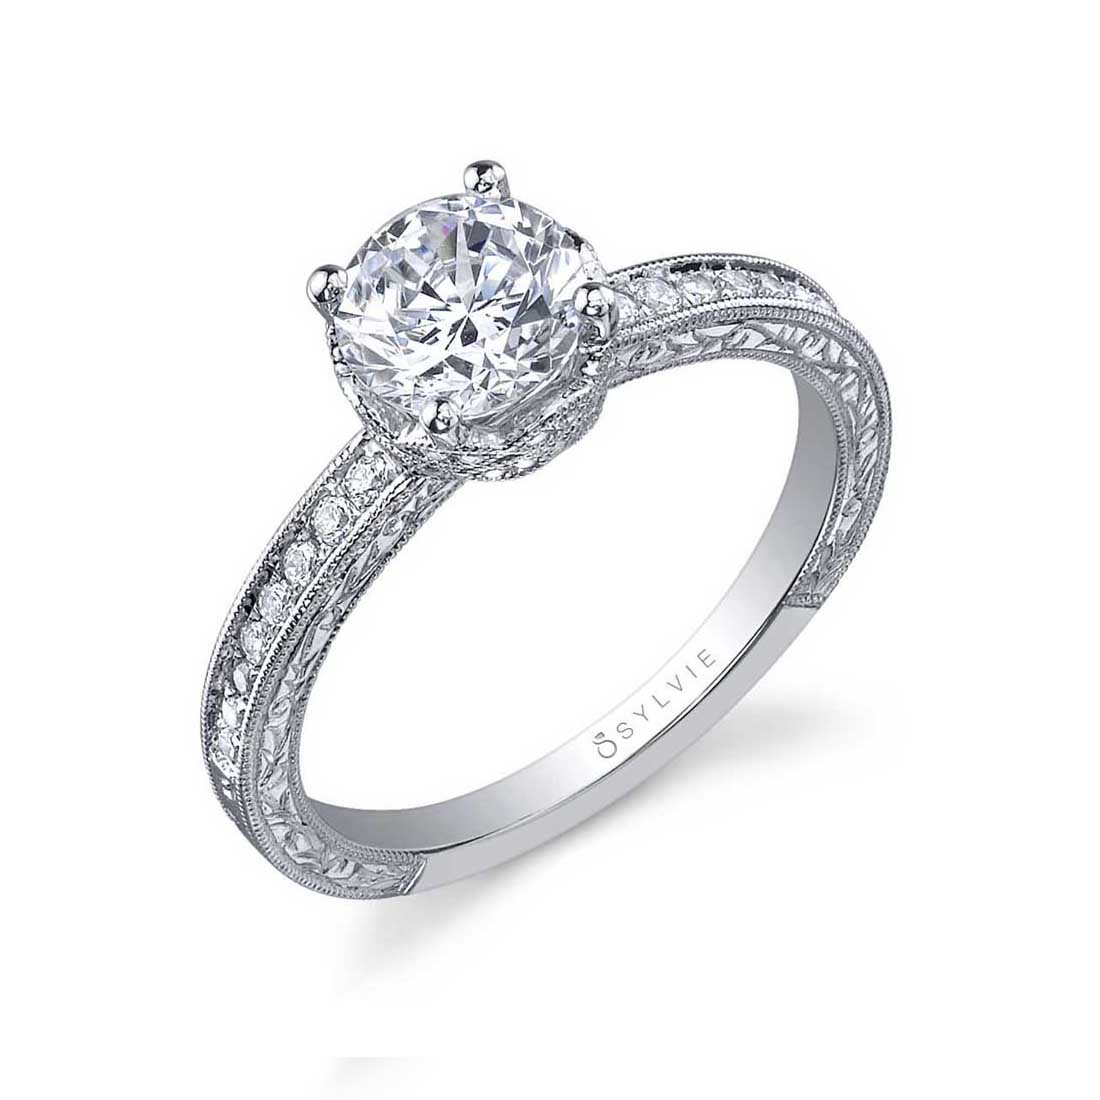 Profile Image of a Vintage Inspired Classic Engagement Ring